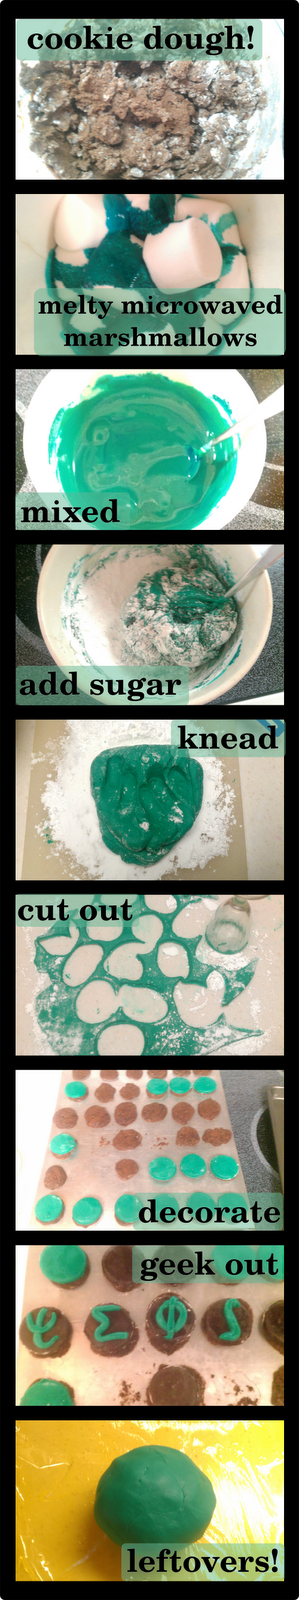 pictures of various stages of making marshmallow fondant. Picture One: unbaked cookie dough. Picture Two: partially-melted marshmallows. Picture Three: melted mixed marshmallows. Picture Four: marshmallows with icing sugar added. Picture Five: kneaded marshmallow-sugar concoction with fingerprints. Picture Six: cutouts of rolled-out marshmallow fondant. Picture Seven: baked cookies.  Picture Eight: greek symbols on cookies. Picture Nine: Leftover fondant wrapped in cling wrap.